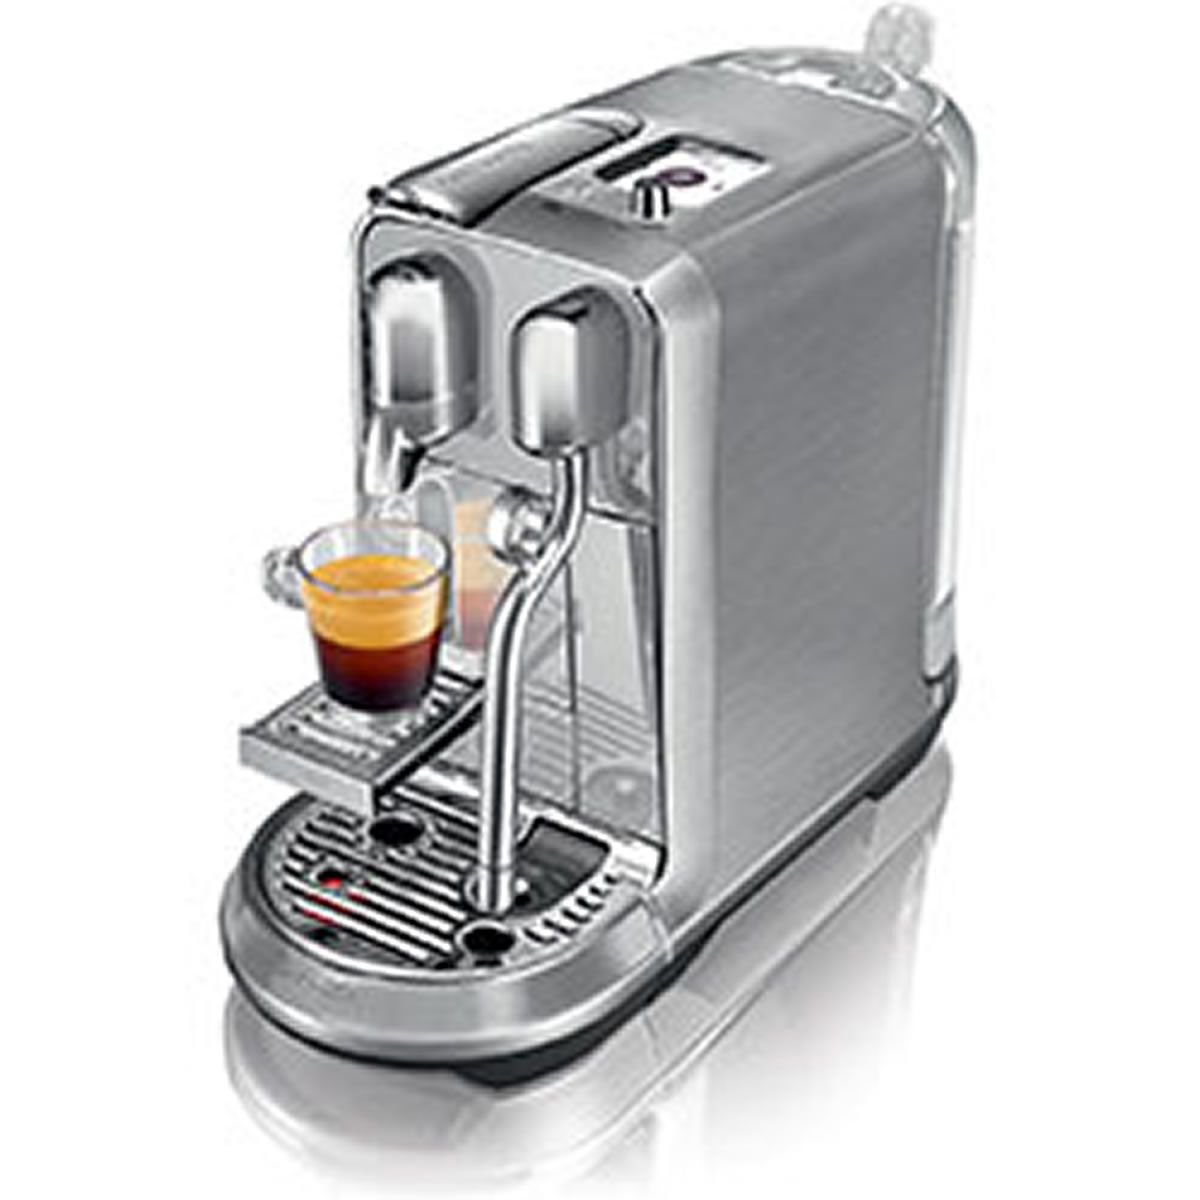 All-In-One Espresso Machines